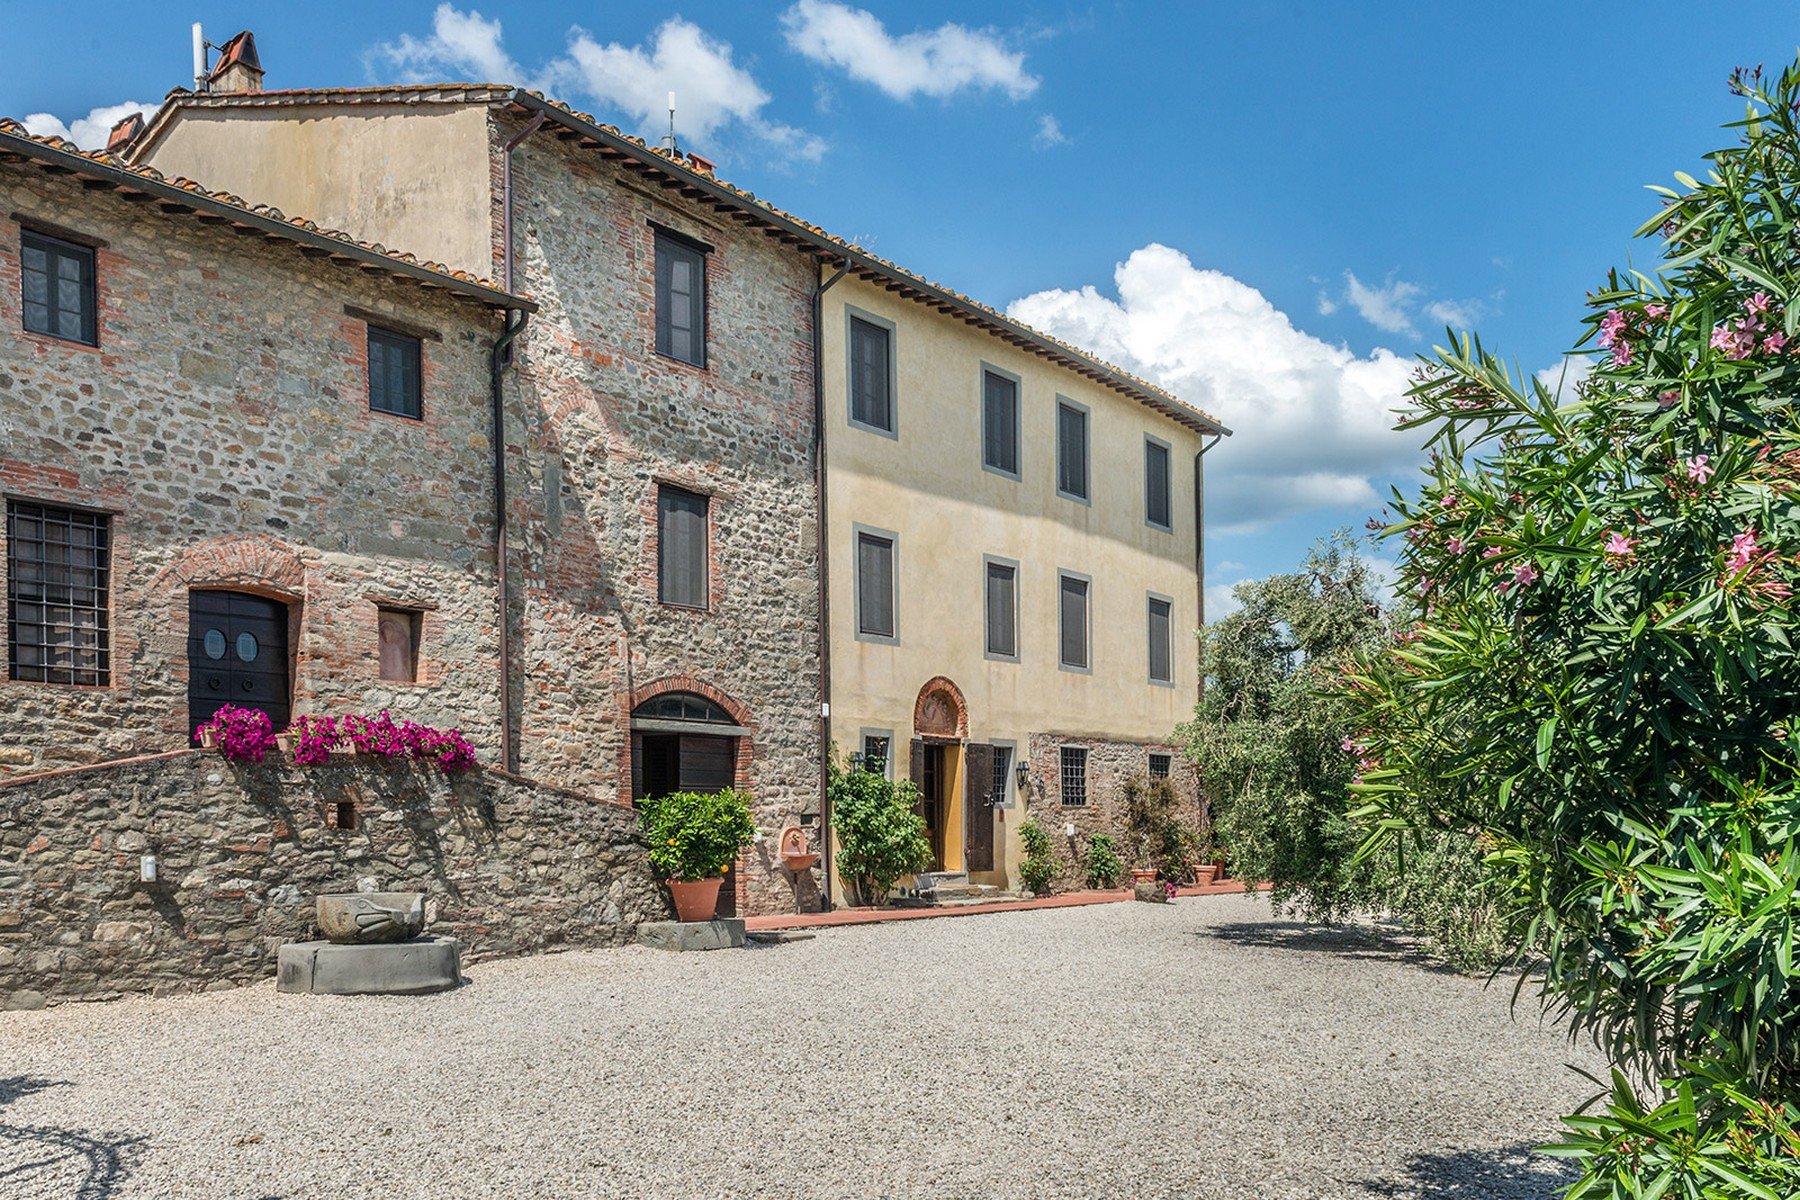 Additional photo for property listing at Tuscan estate near Lucca with land Camigliano San Gemma Camigliano San Gemma, Lucca 55100 Italien